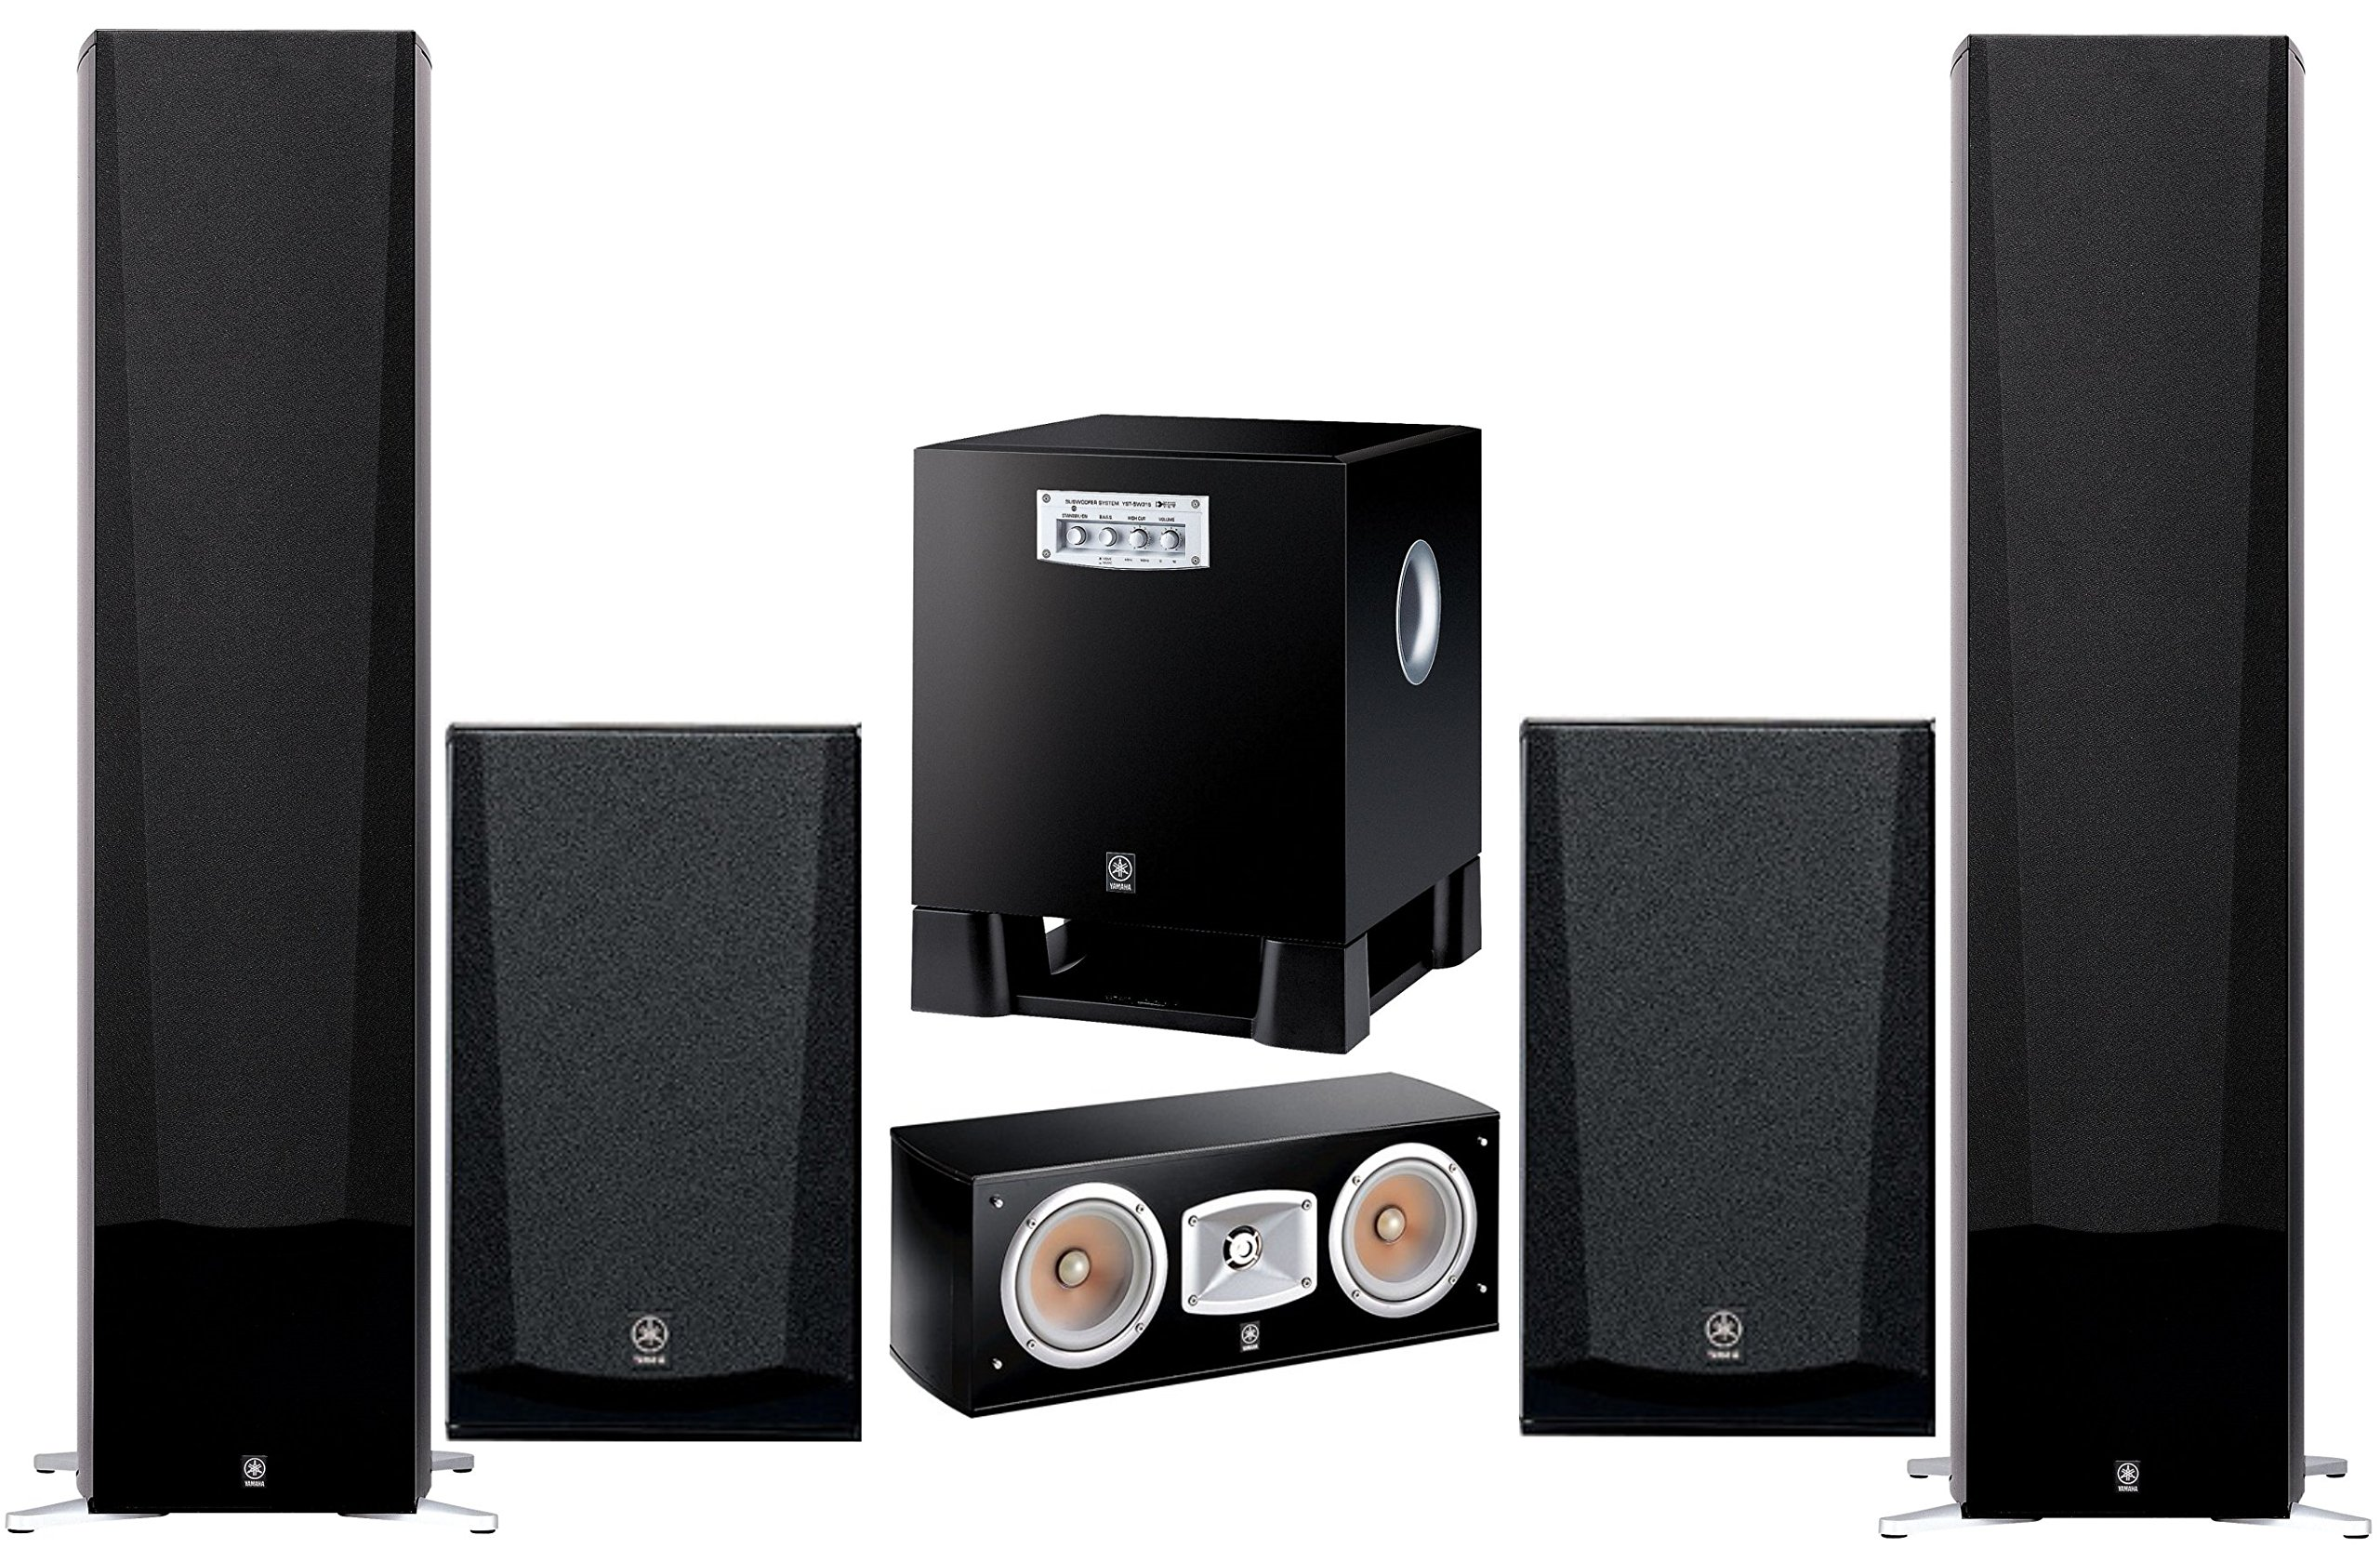 Yamaha 3D Surround Sound Multimedia Home Theater Speaker System by Yamaha